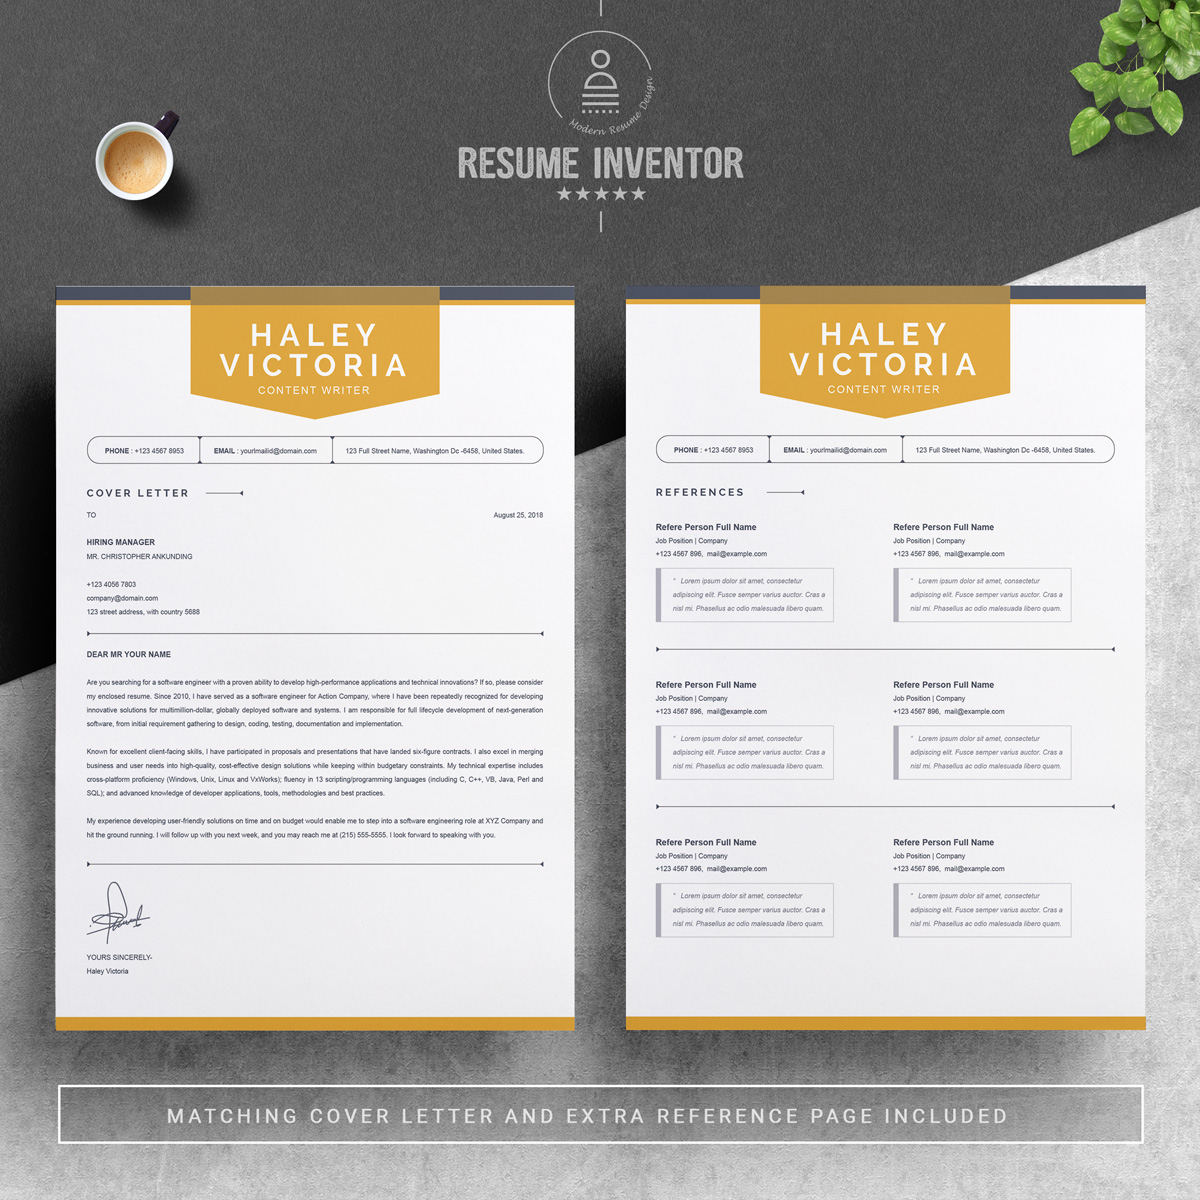 https://s3u.tmimgcdn.com/1860567-1554009801588_03_2-Pages-Free-Resume-Design-Template.jpg